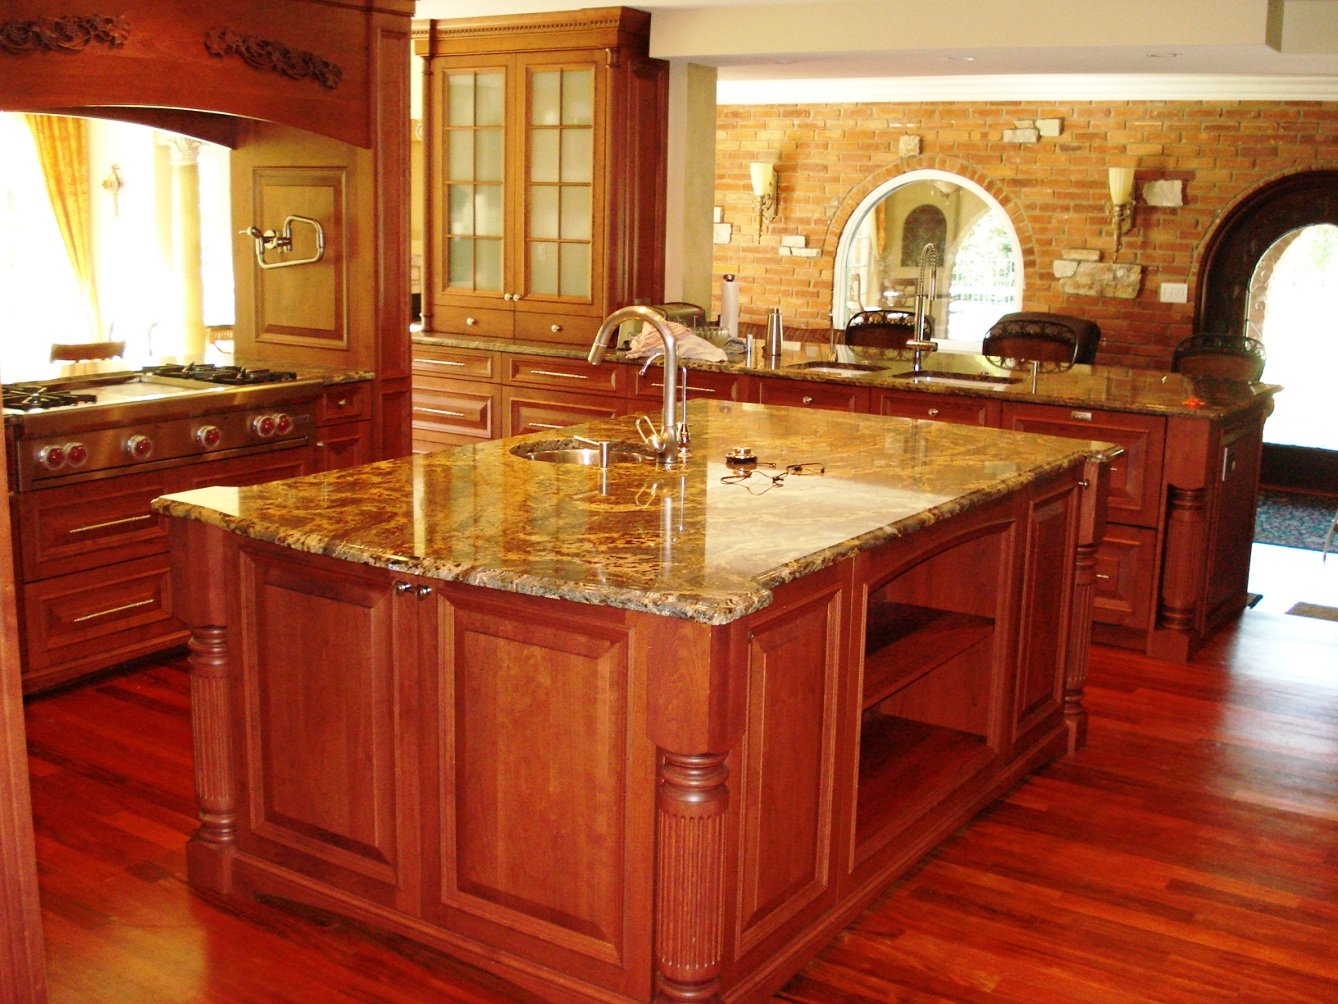 Featured Image of Wooden Kitchen Furniture For Country Kitchen Style